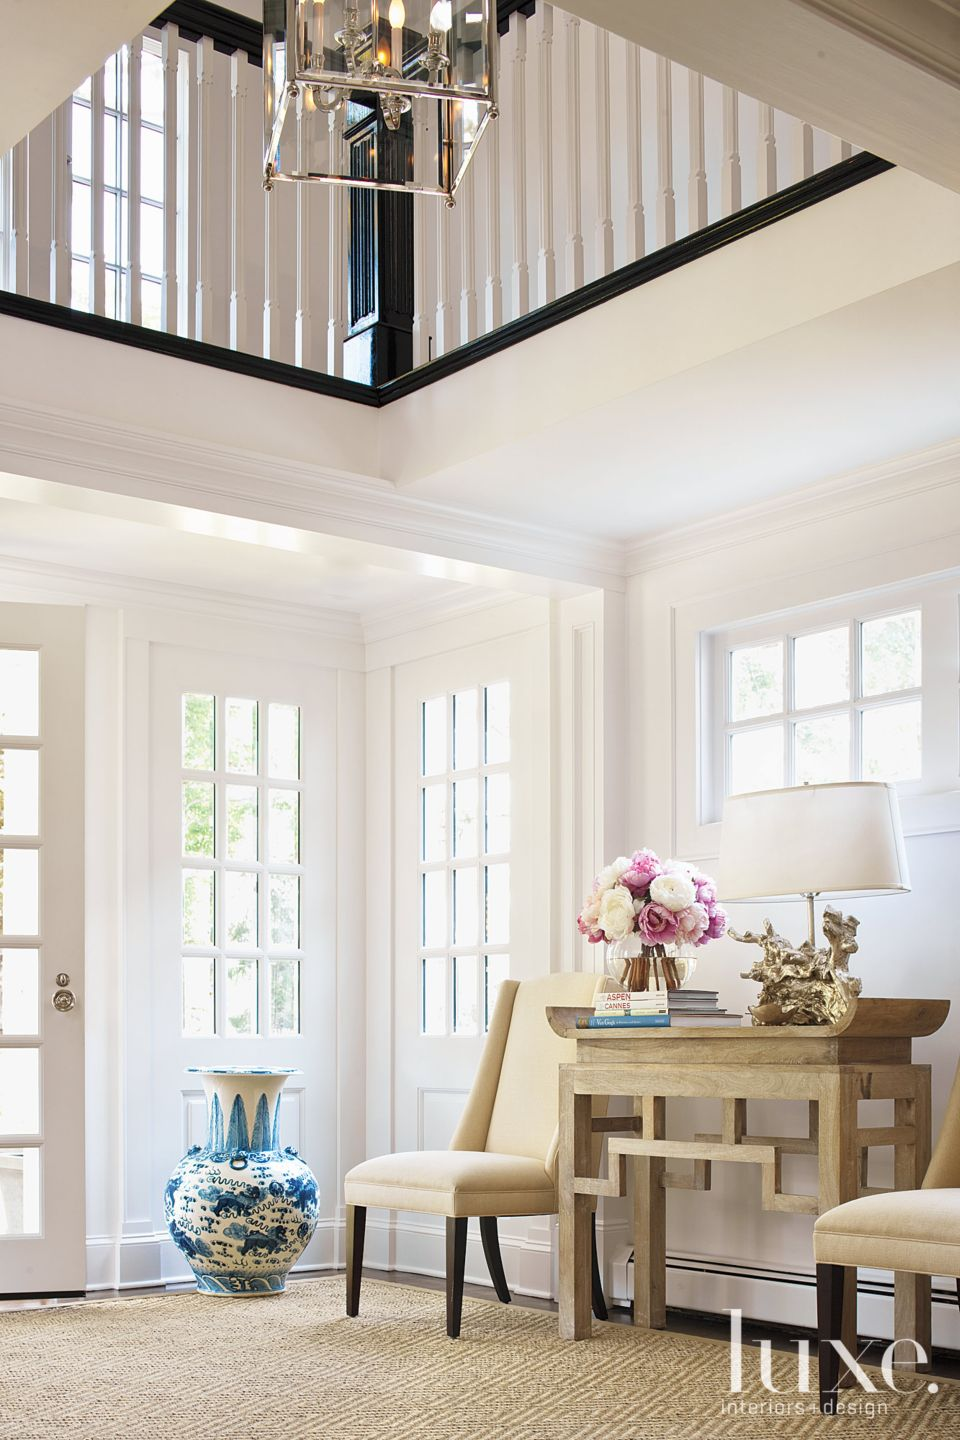 Traditional White Foyer with Floor Vase